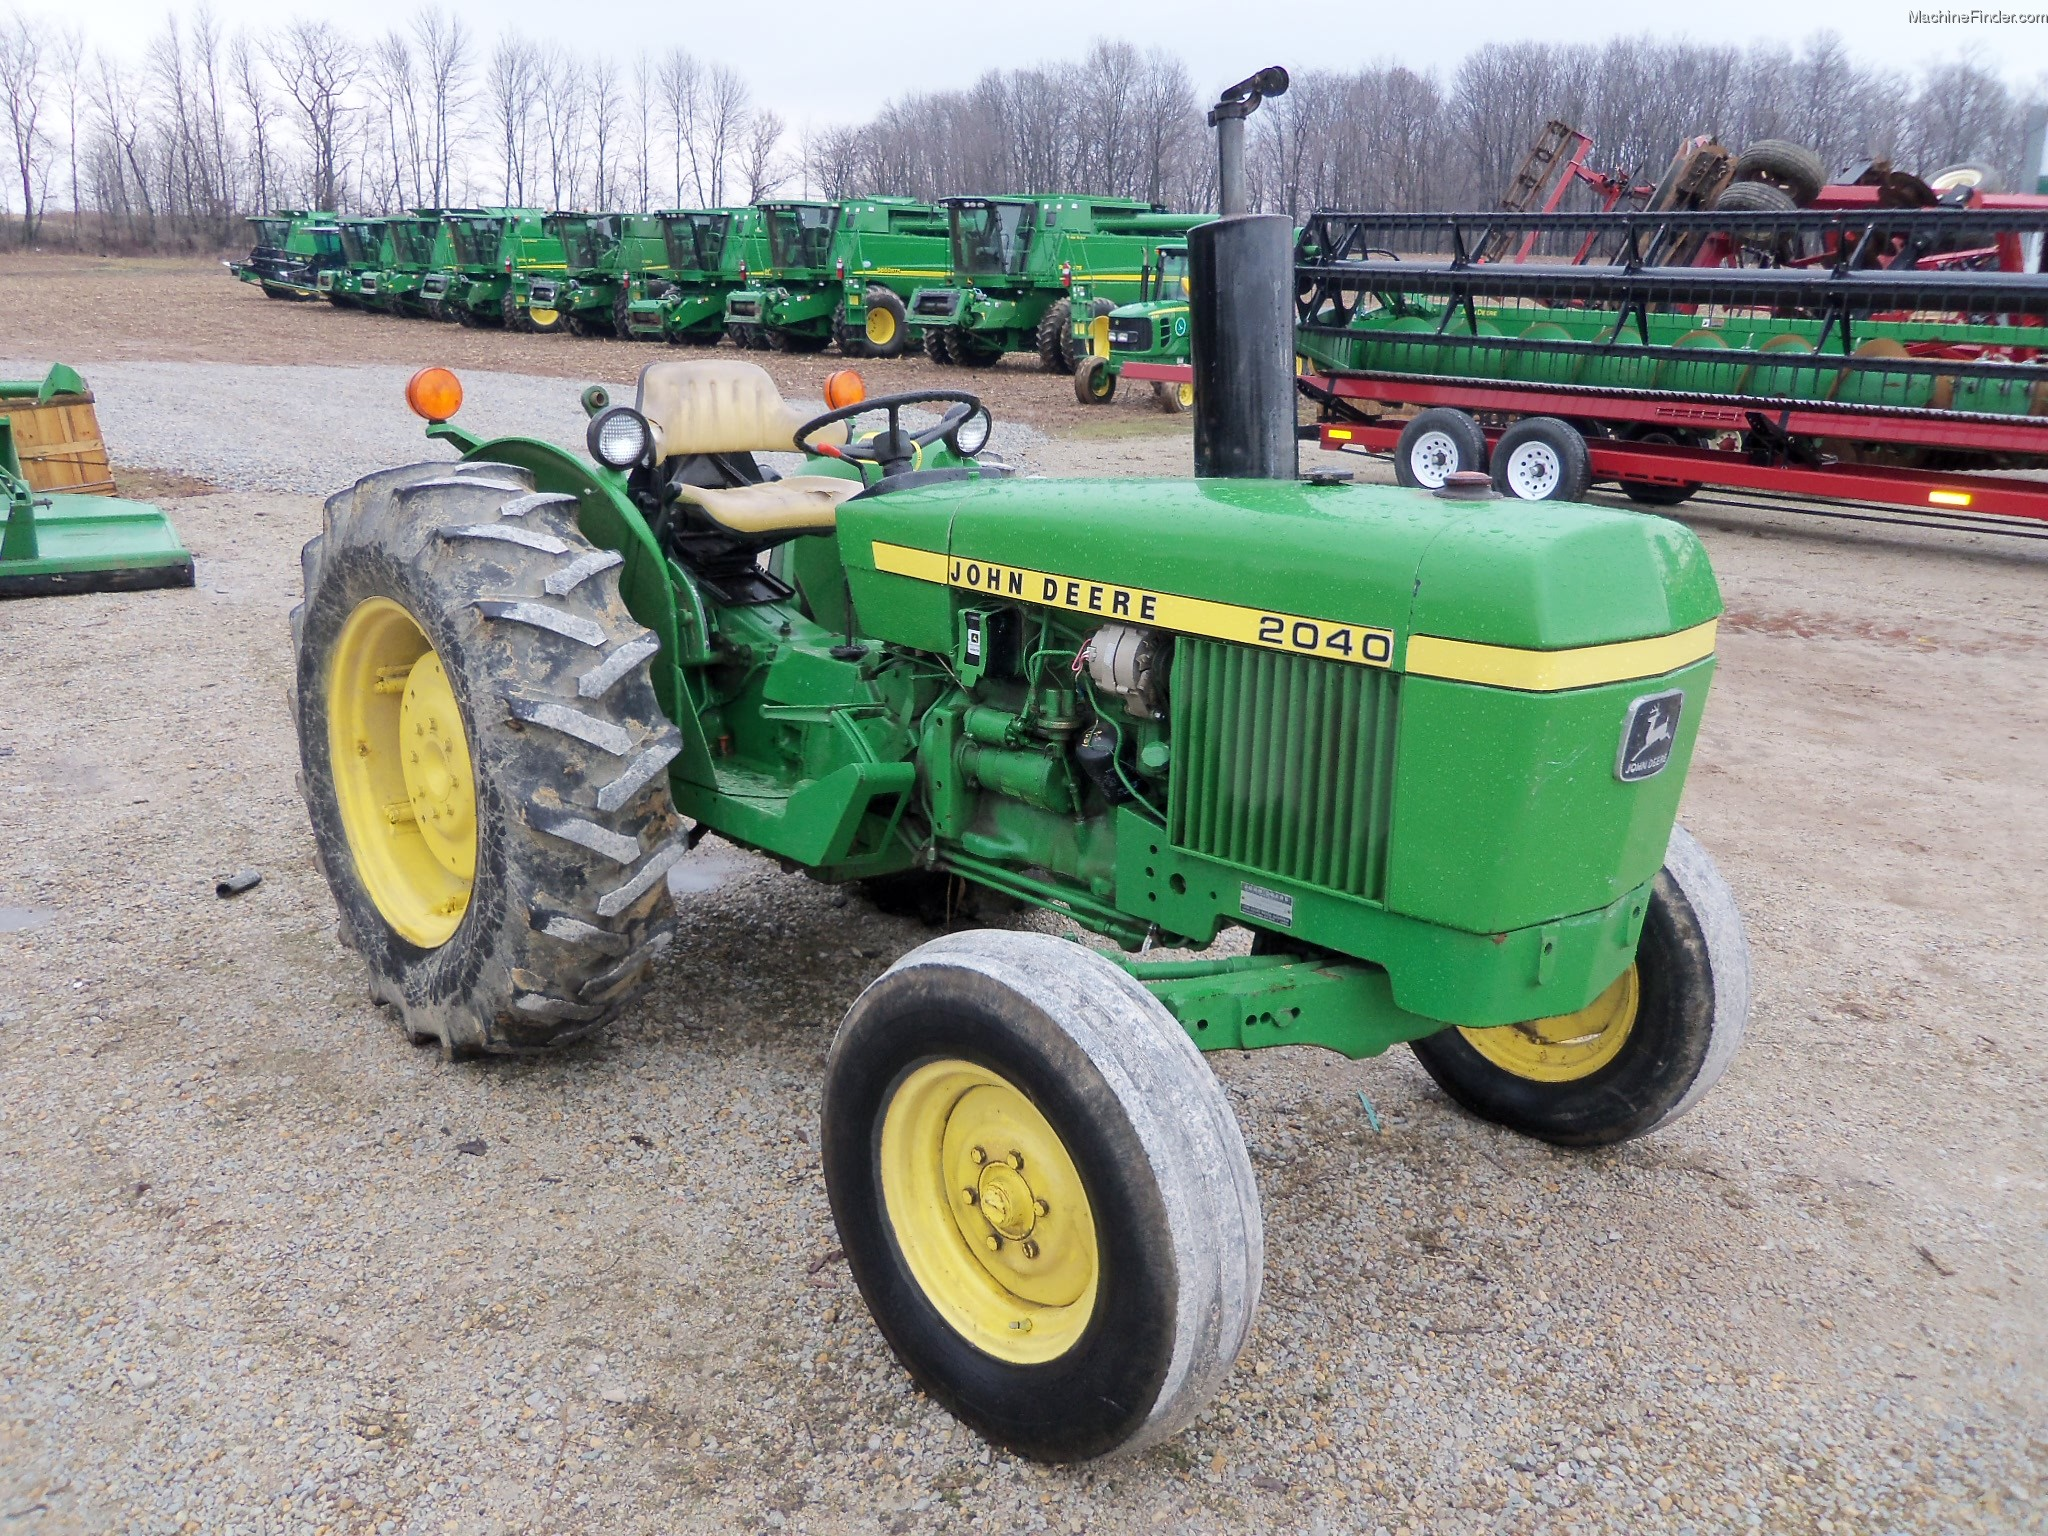 Used Farm & Agricultural Equipment - John Deere MachineFinder